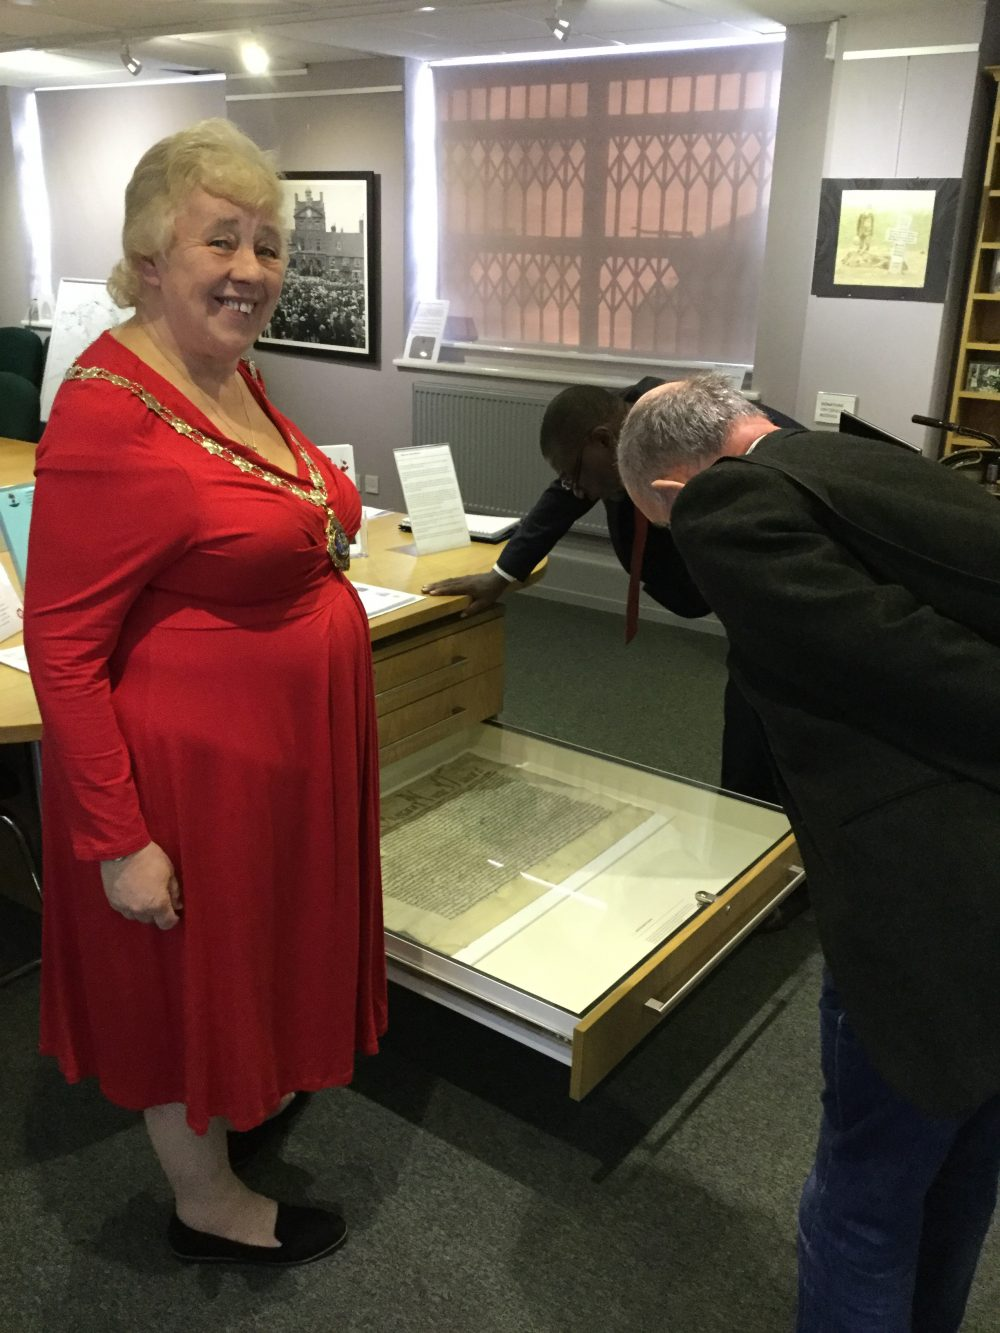 Image of Mayor of Daventry and Mayor of Uganda viewing museum items.